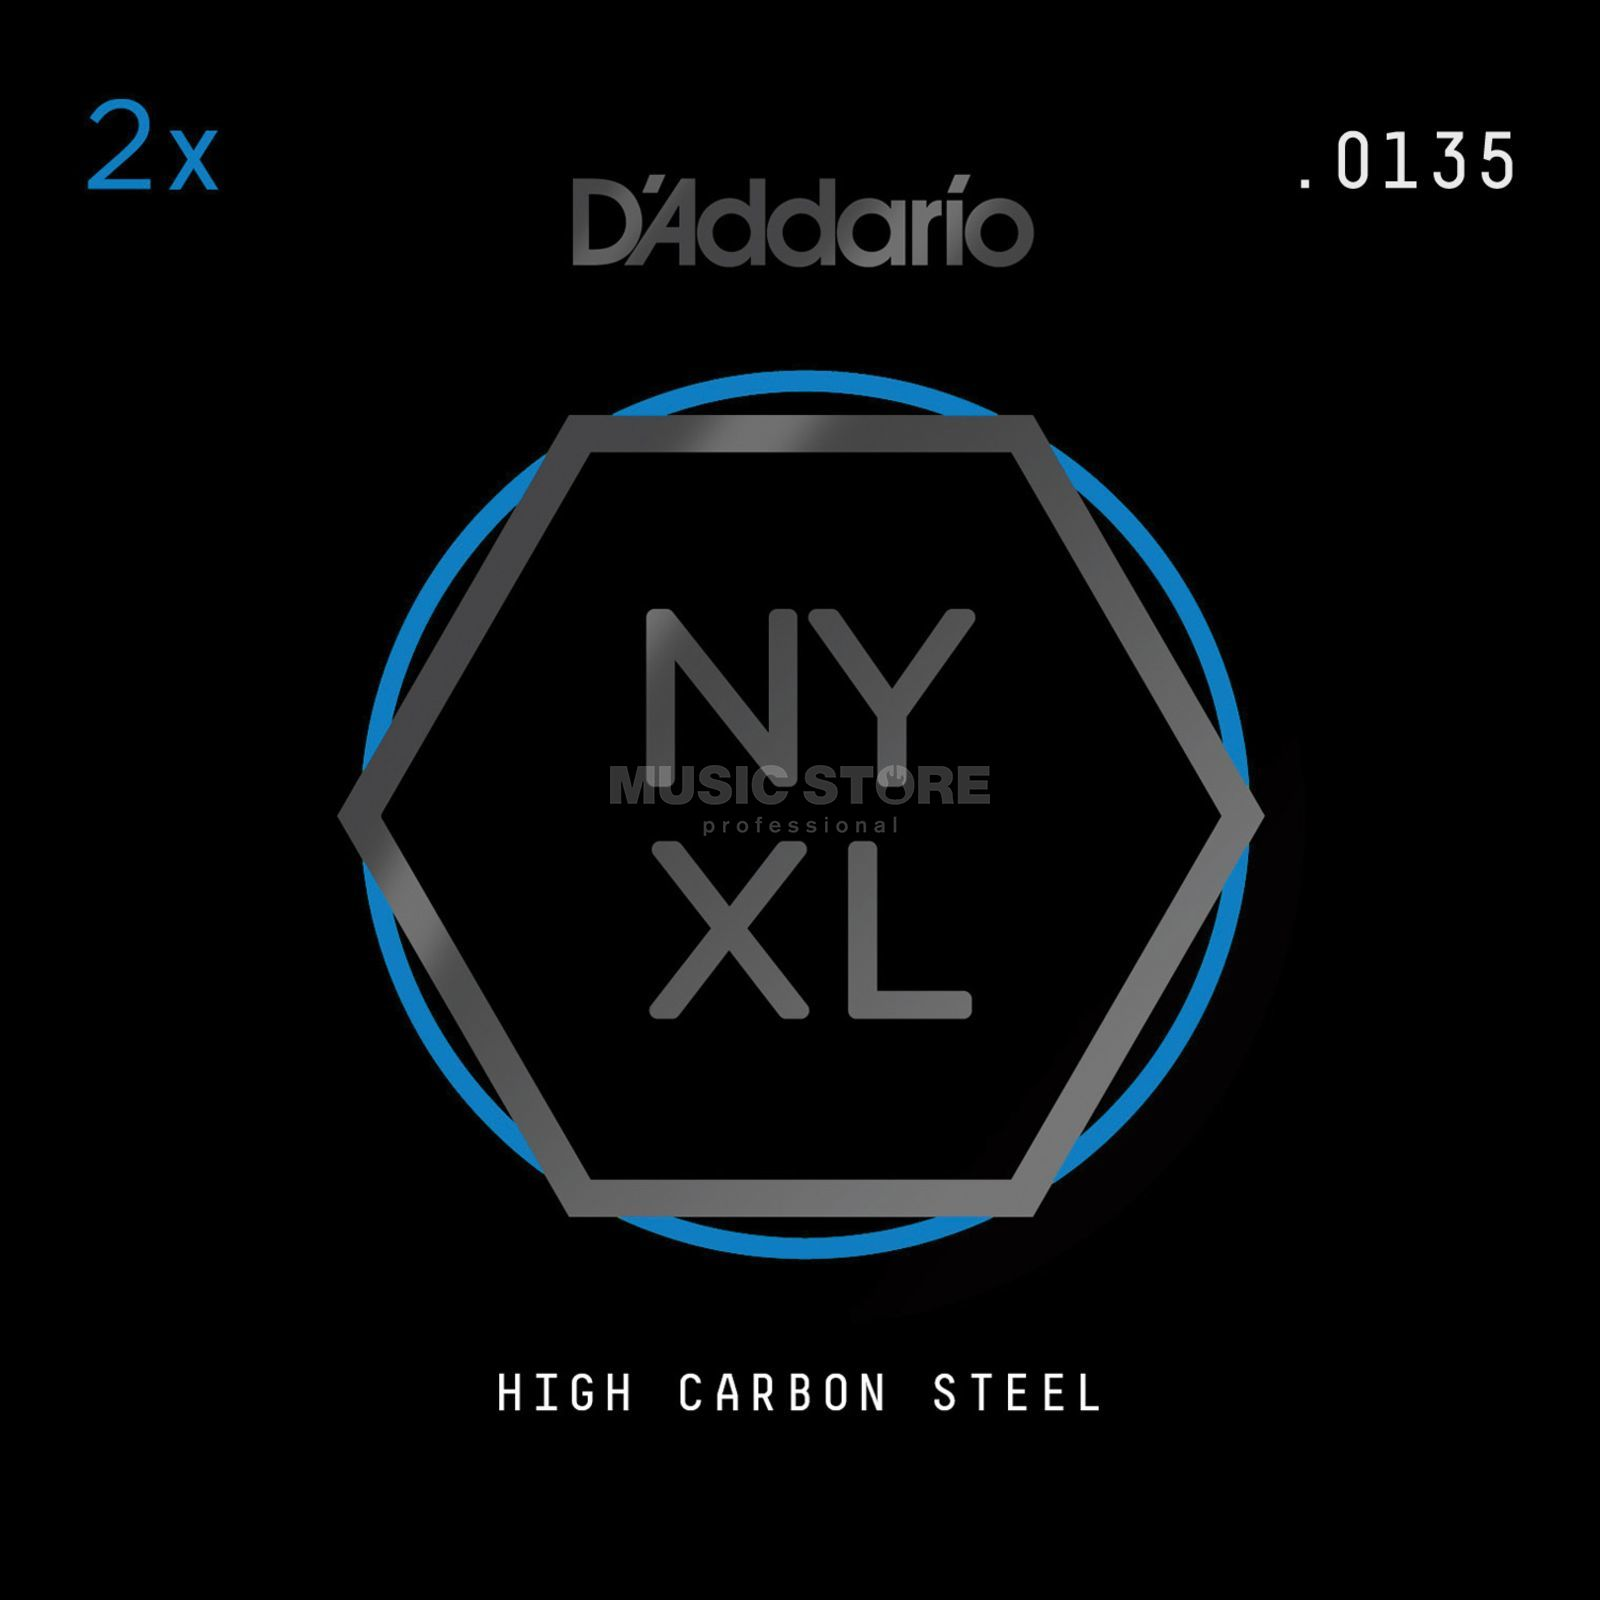 D'Addario NYPL0135 Plain Single String 2-Pack - High Carbon Steel Image du produit